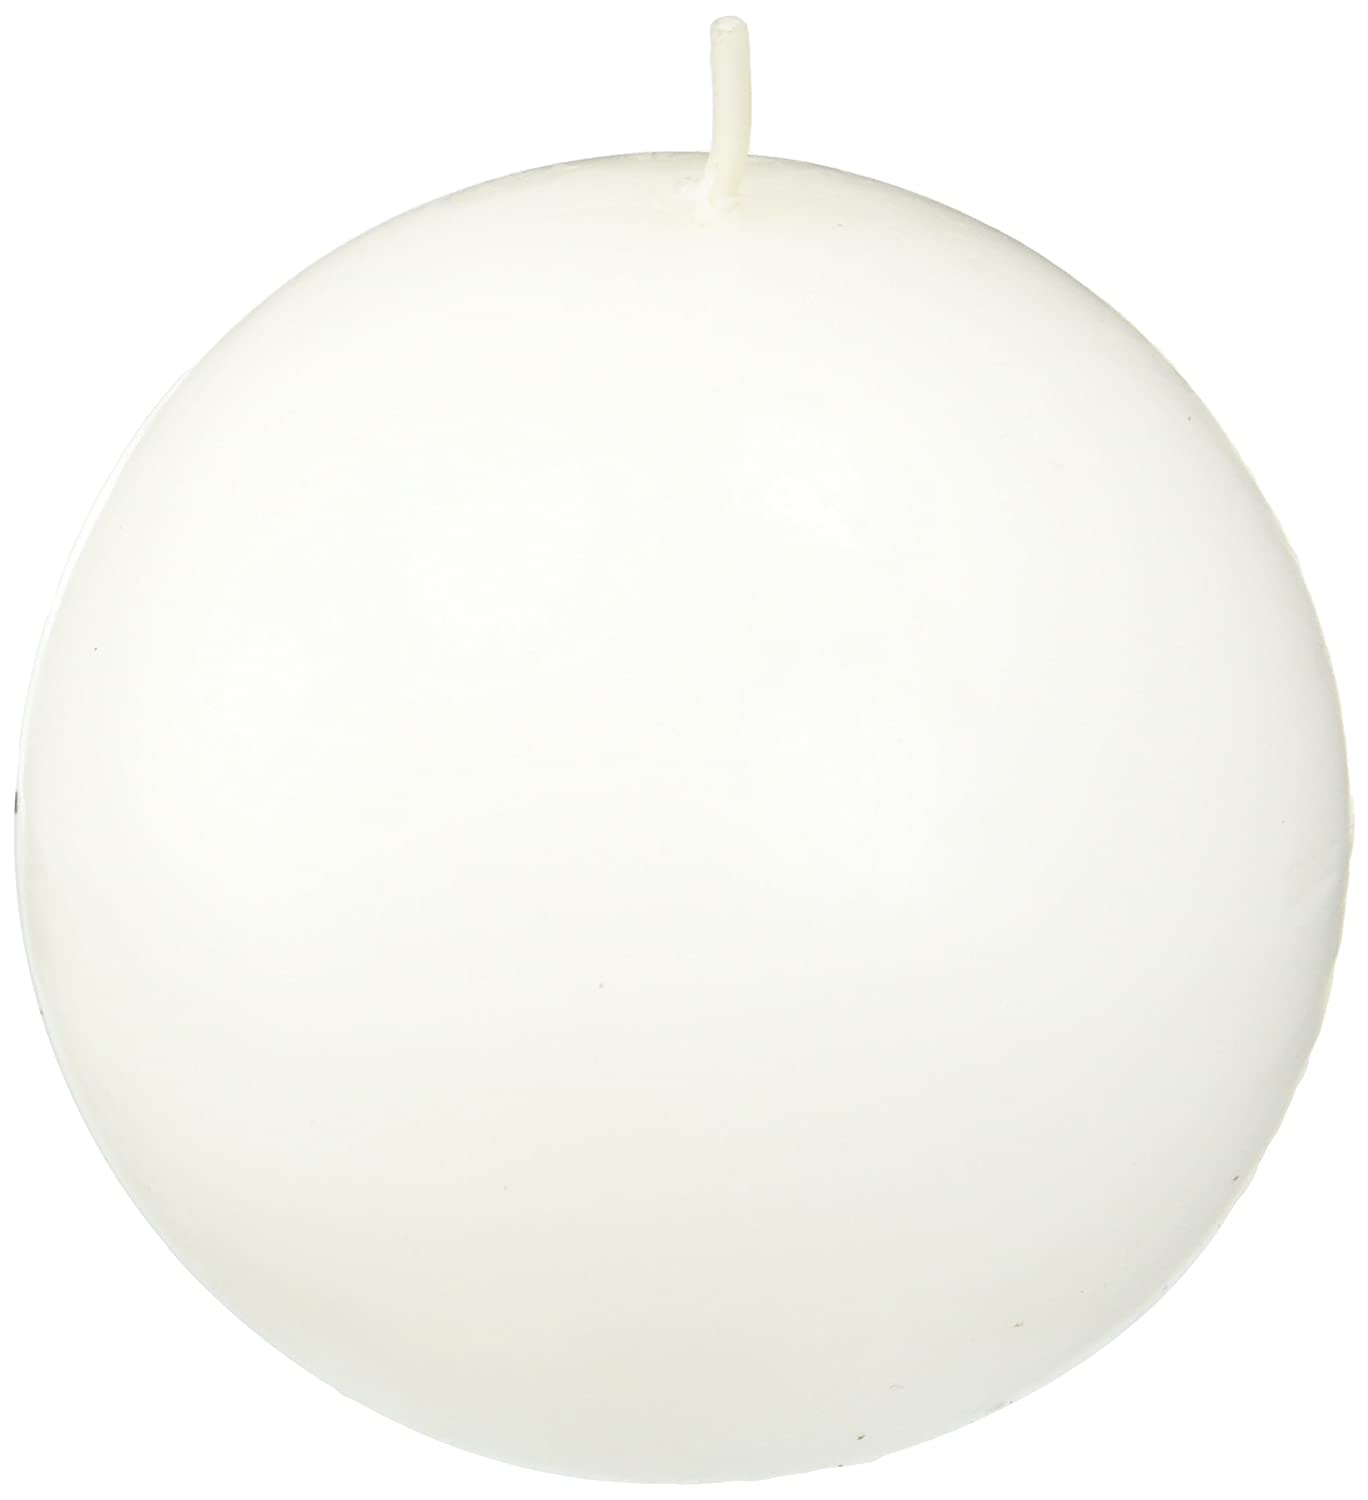 Zest Candle 6-Piece Ball Candles, 3-Inch, White Citronella CBZ-043